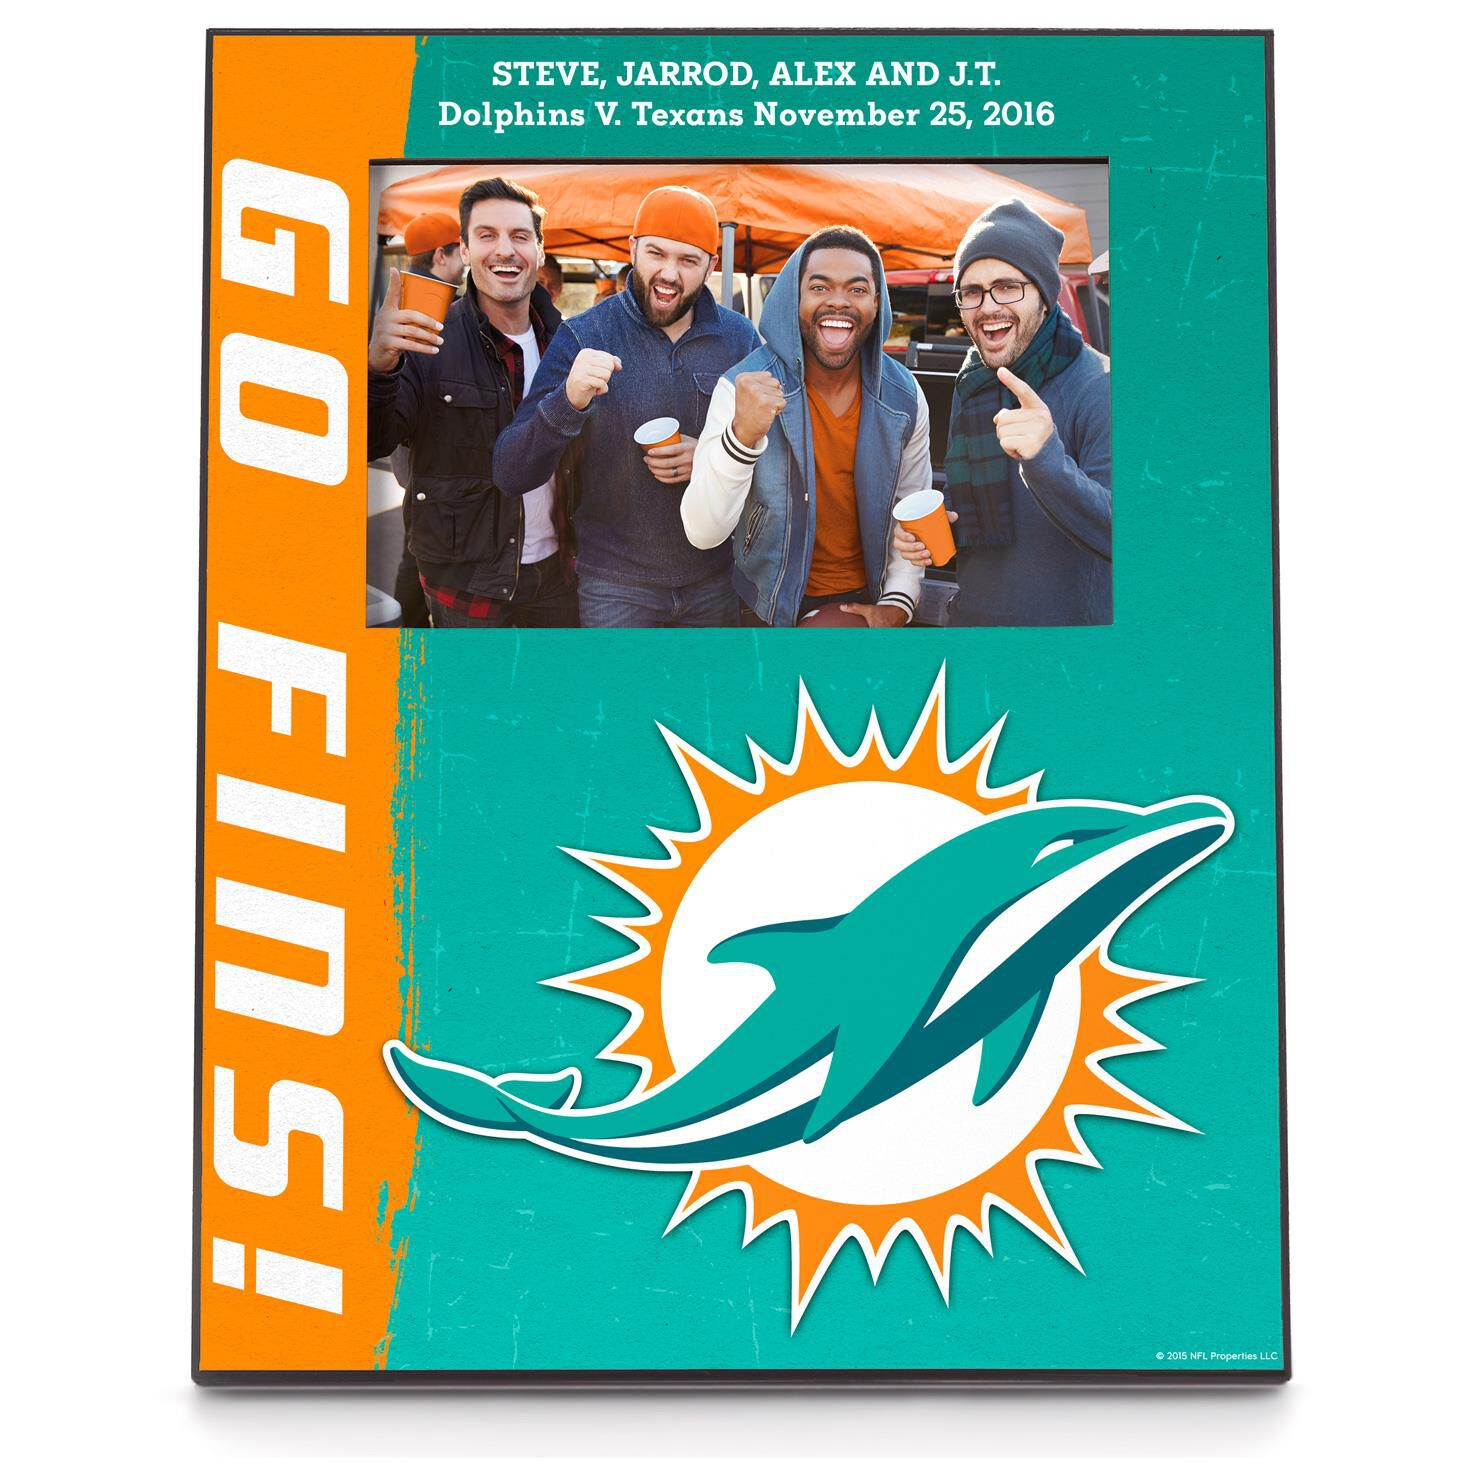 Miami dolphins personalized 4x6 photo frame personalized home miami dolphins personalized 4x6 photo frame personalized home decor hallmark jeuxipadfo Image collections